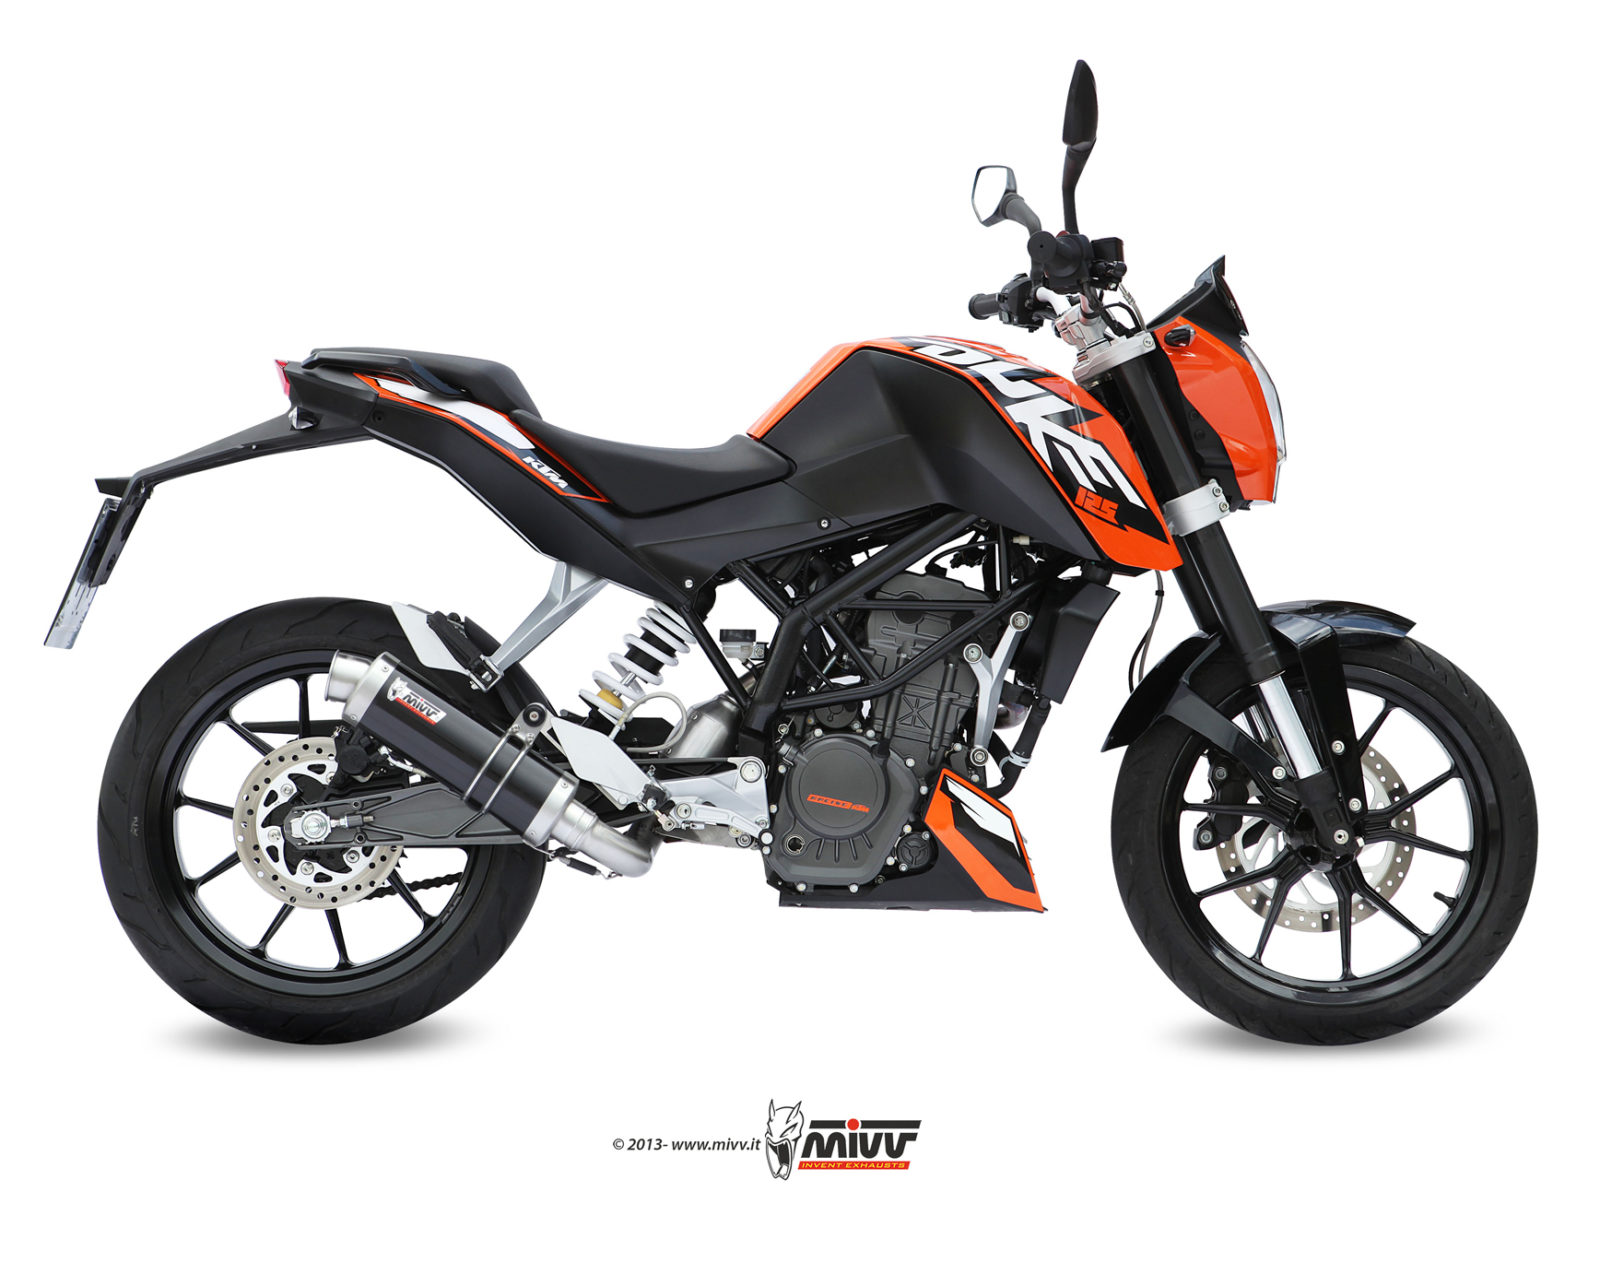 KTM 125 DUKE Exhaust Mivv Gp Black stainless steel KT.009.LXB